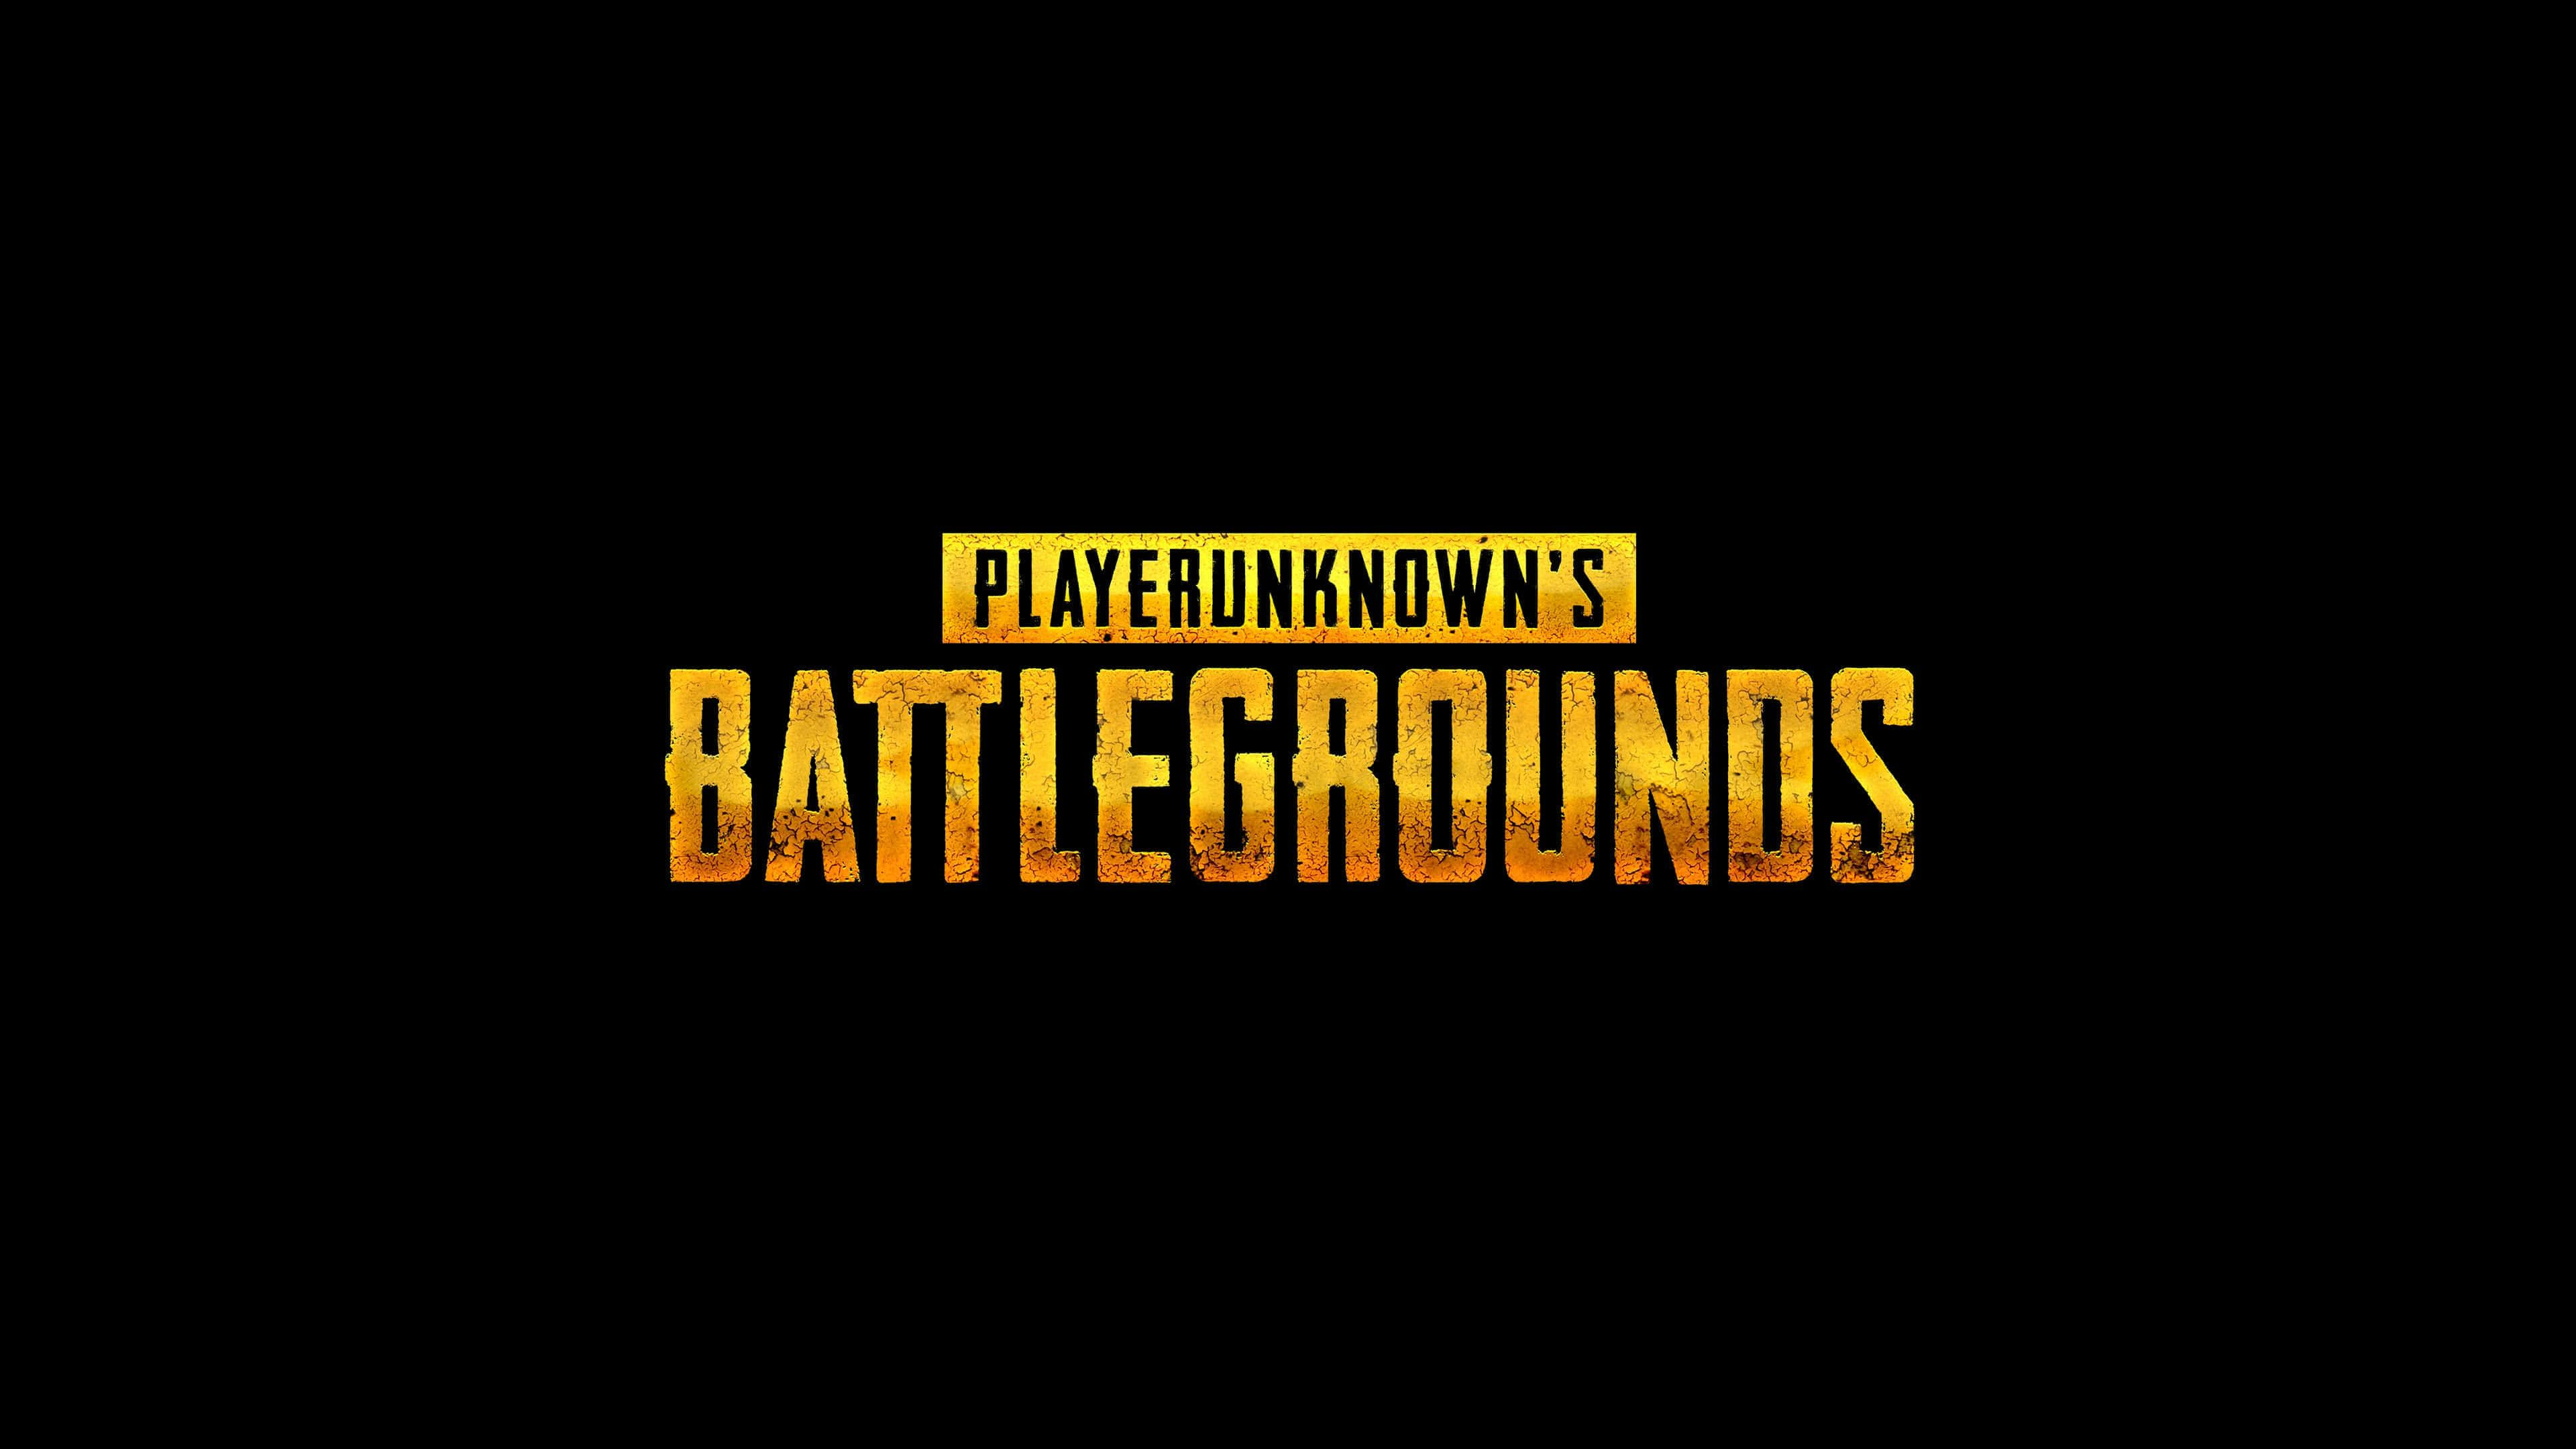 Pubg Player Unknown Battlegrounds Logo Uhd 4k Wallpaper Http Www Wallpaperback Net Games Pubg Player Unknown Player Unknown Phone Wallpaper Iphone Wallpaper